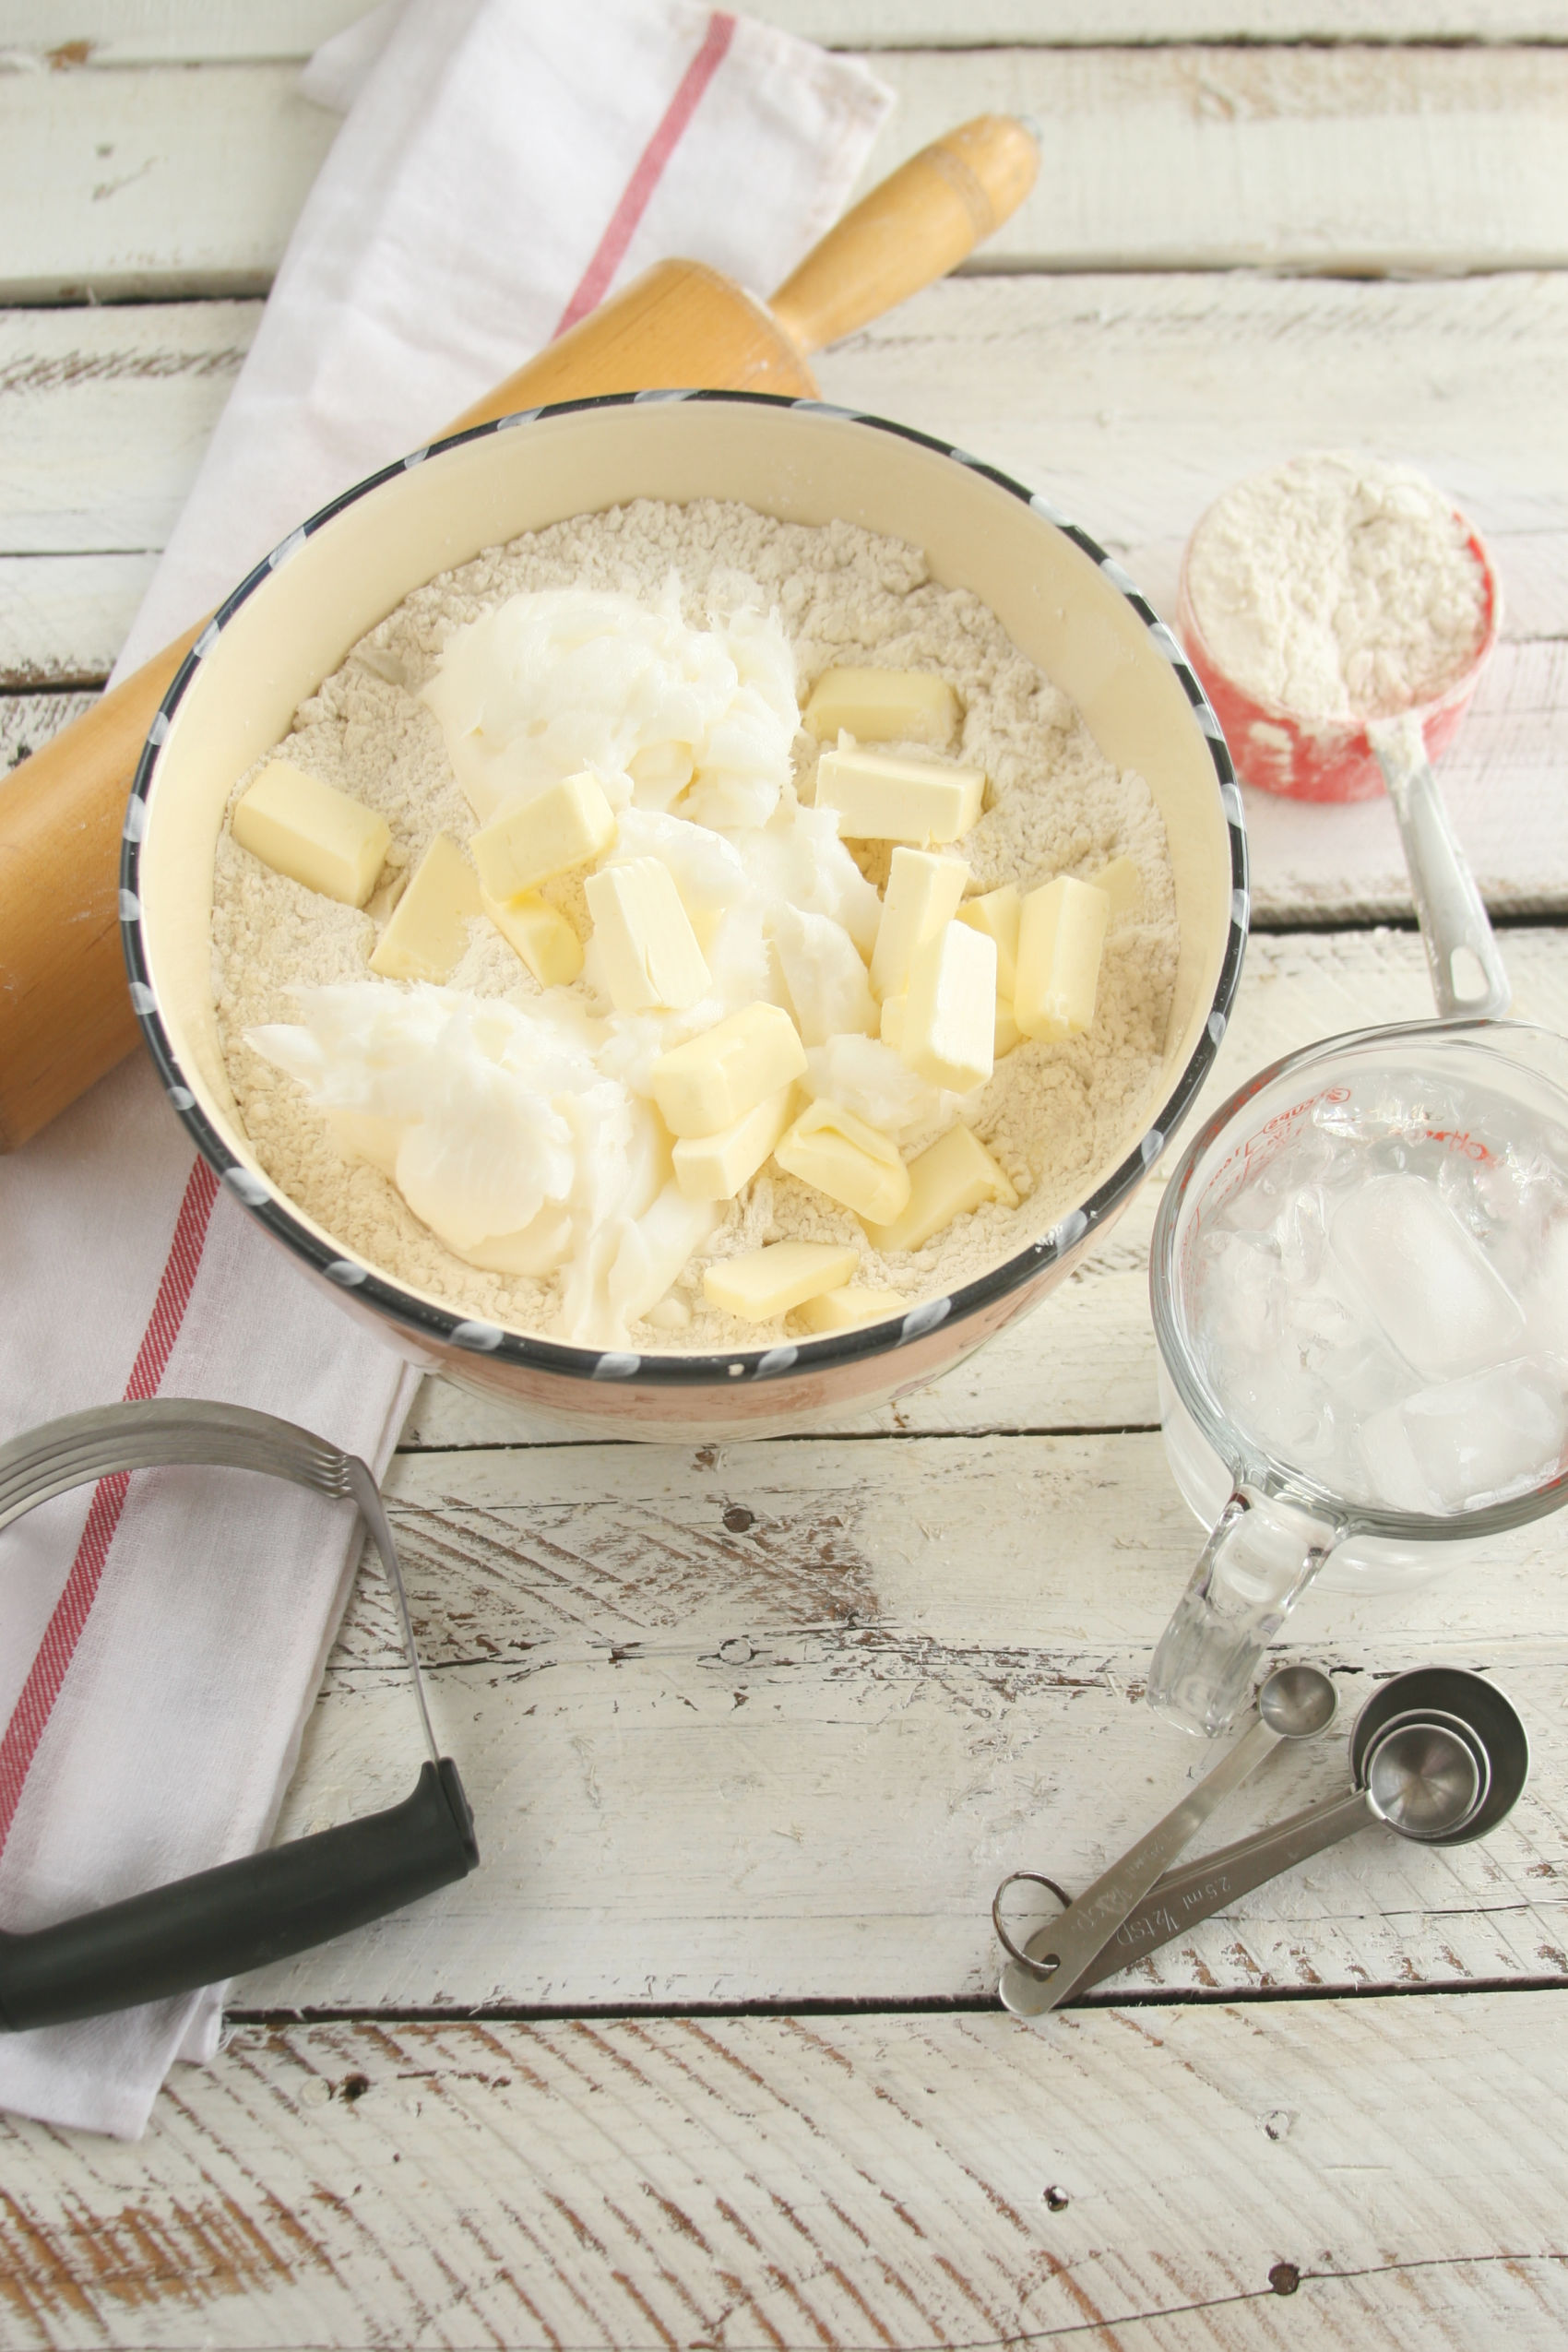 Ceramic bowl with flour, lard, and butter being cut in with a pastry cutter.